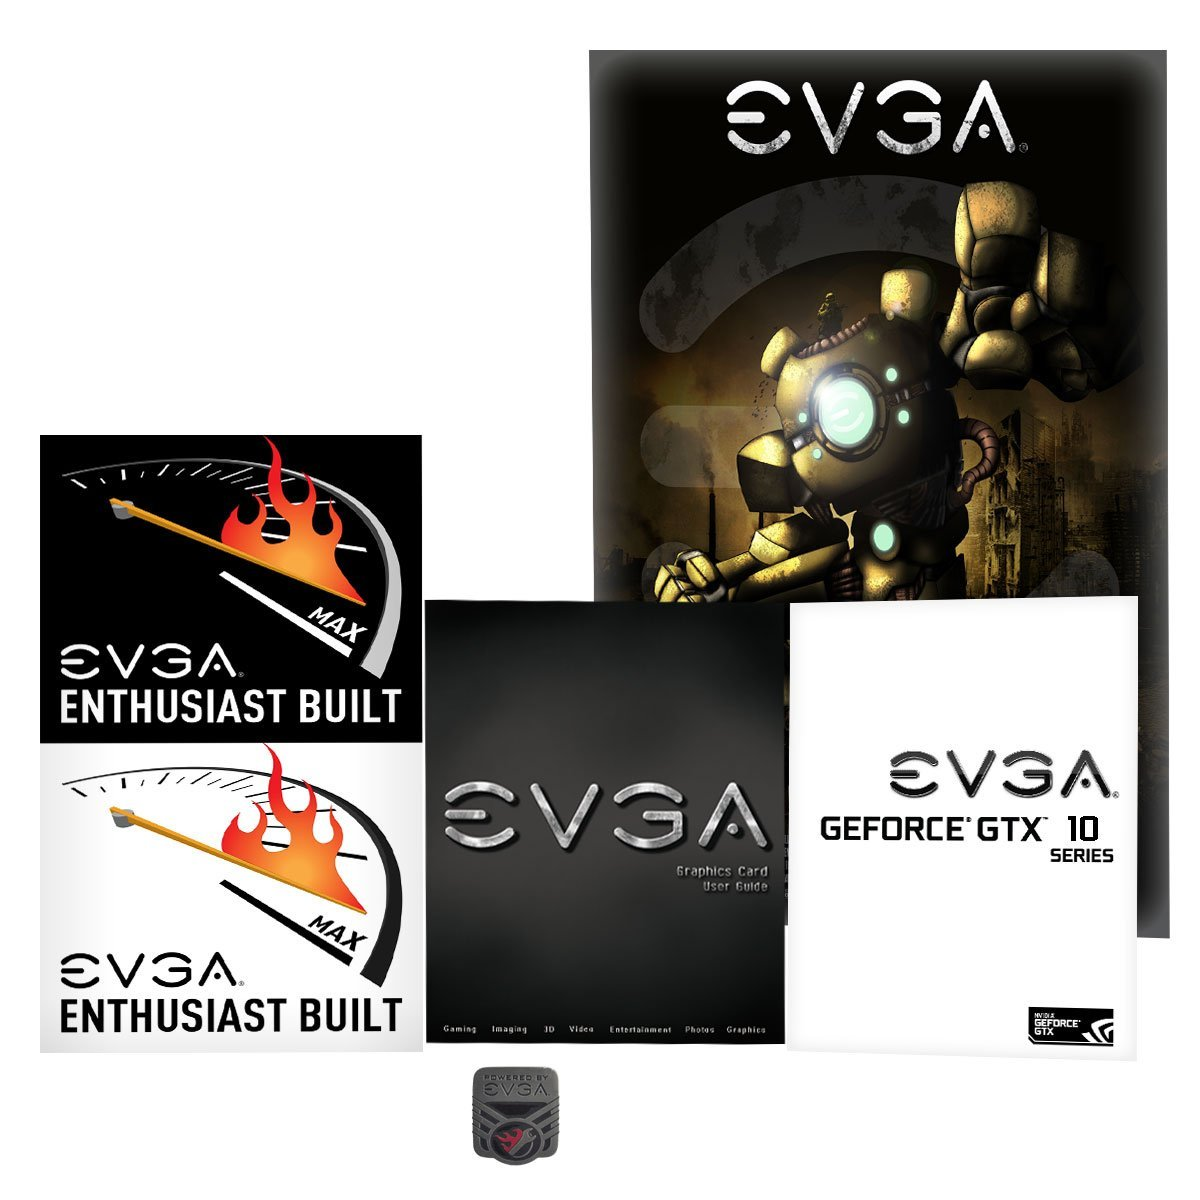 EVGA NVIDIA GeForce GTX 1080 8GB PCI Express 3.0 Graphics Card by EVGA